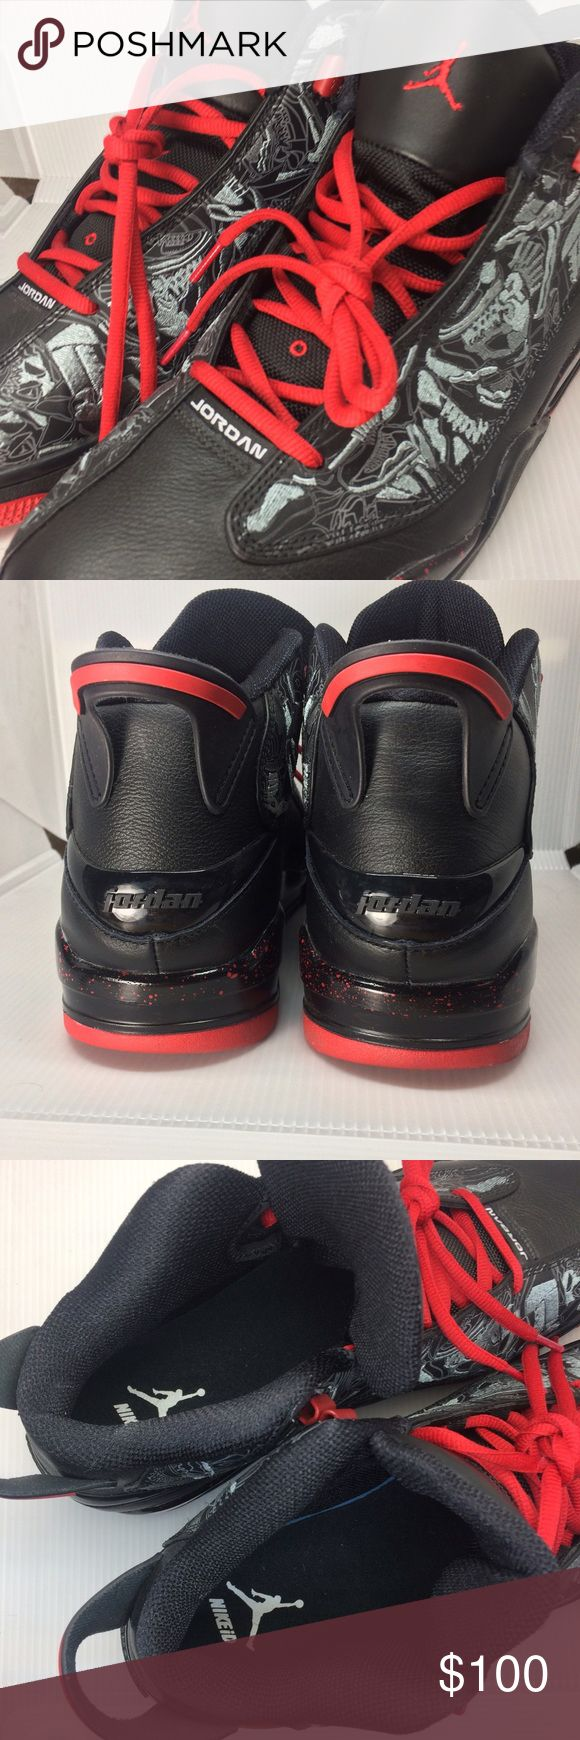 Nike ID unique basketball shoes Never worn, one of a kind Nike ID Jordan basketball shoes. No box. No trade. Paid $200+ Nike Shoes Sneakers